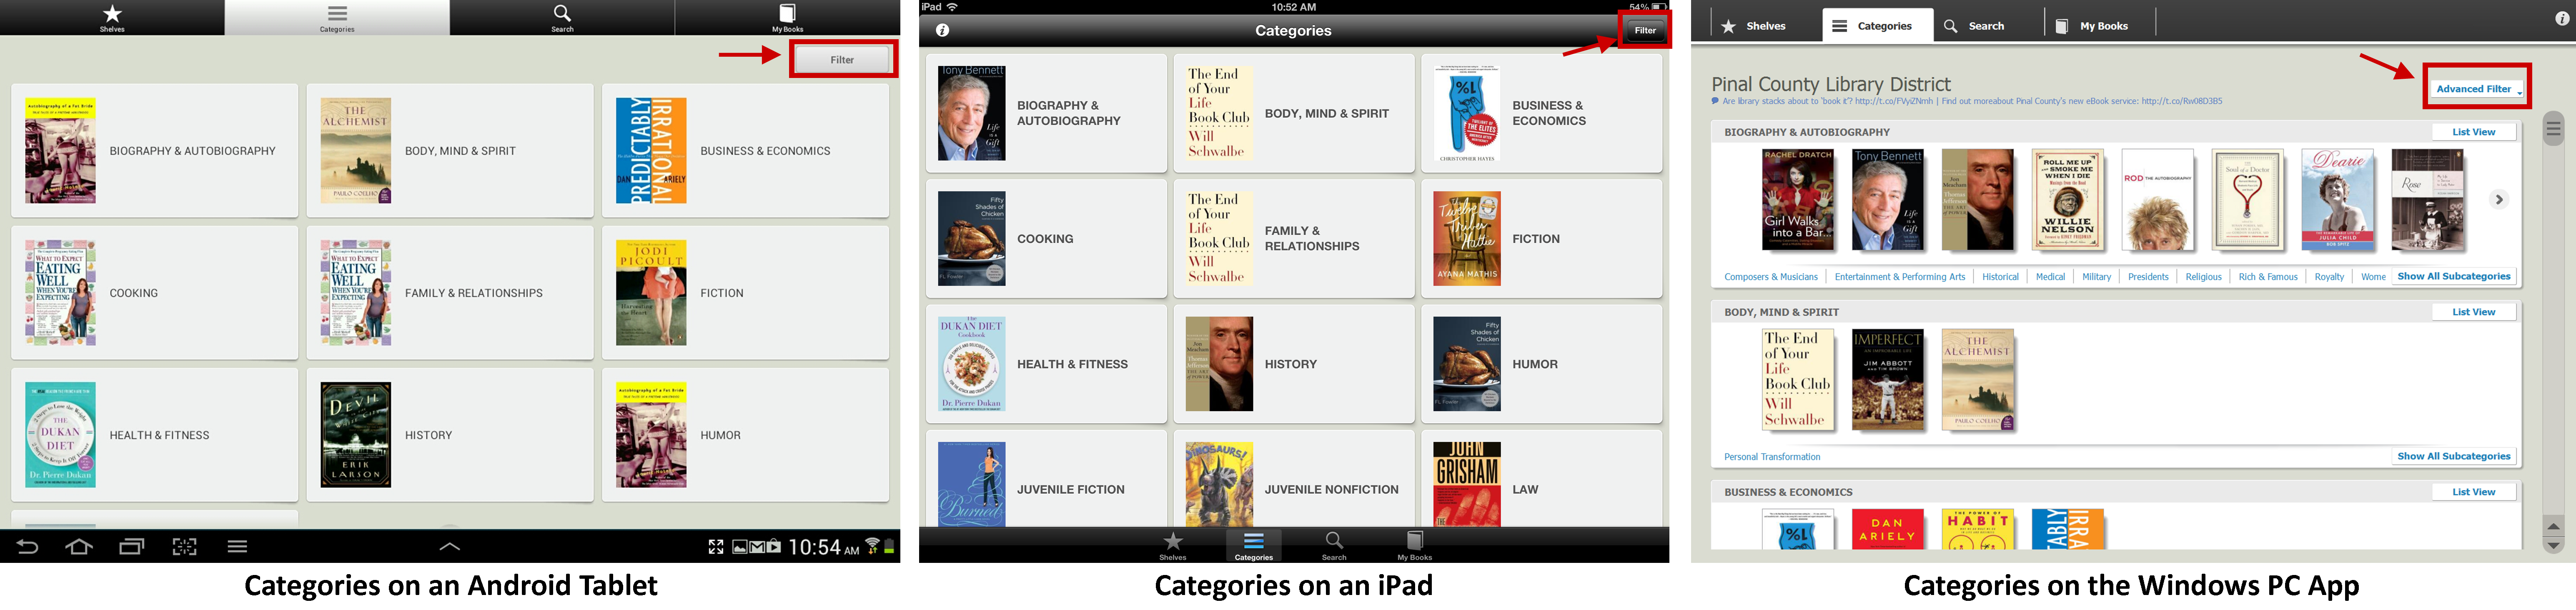 Categories on the 3M Cloud Library Apps